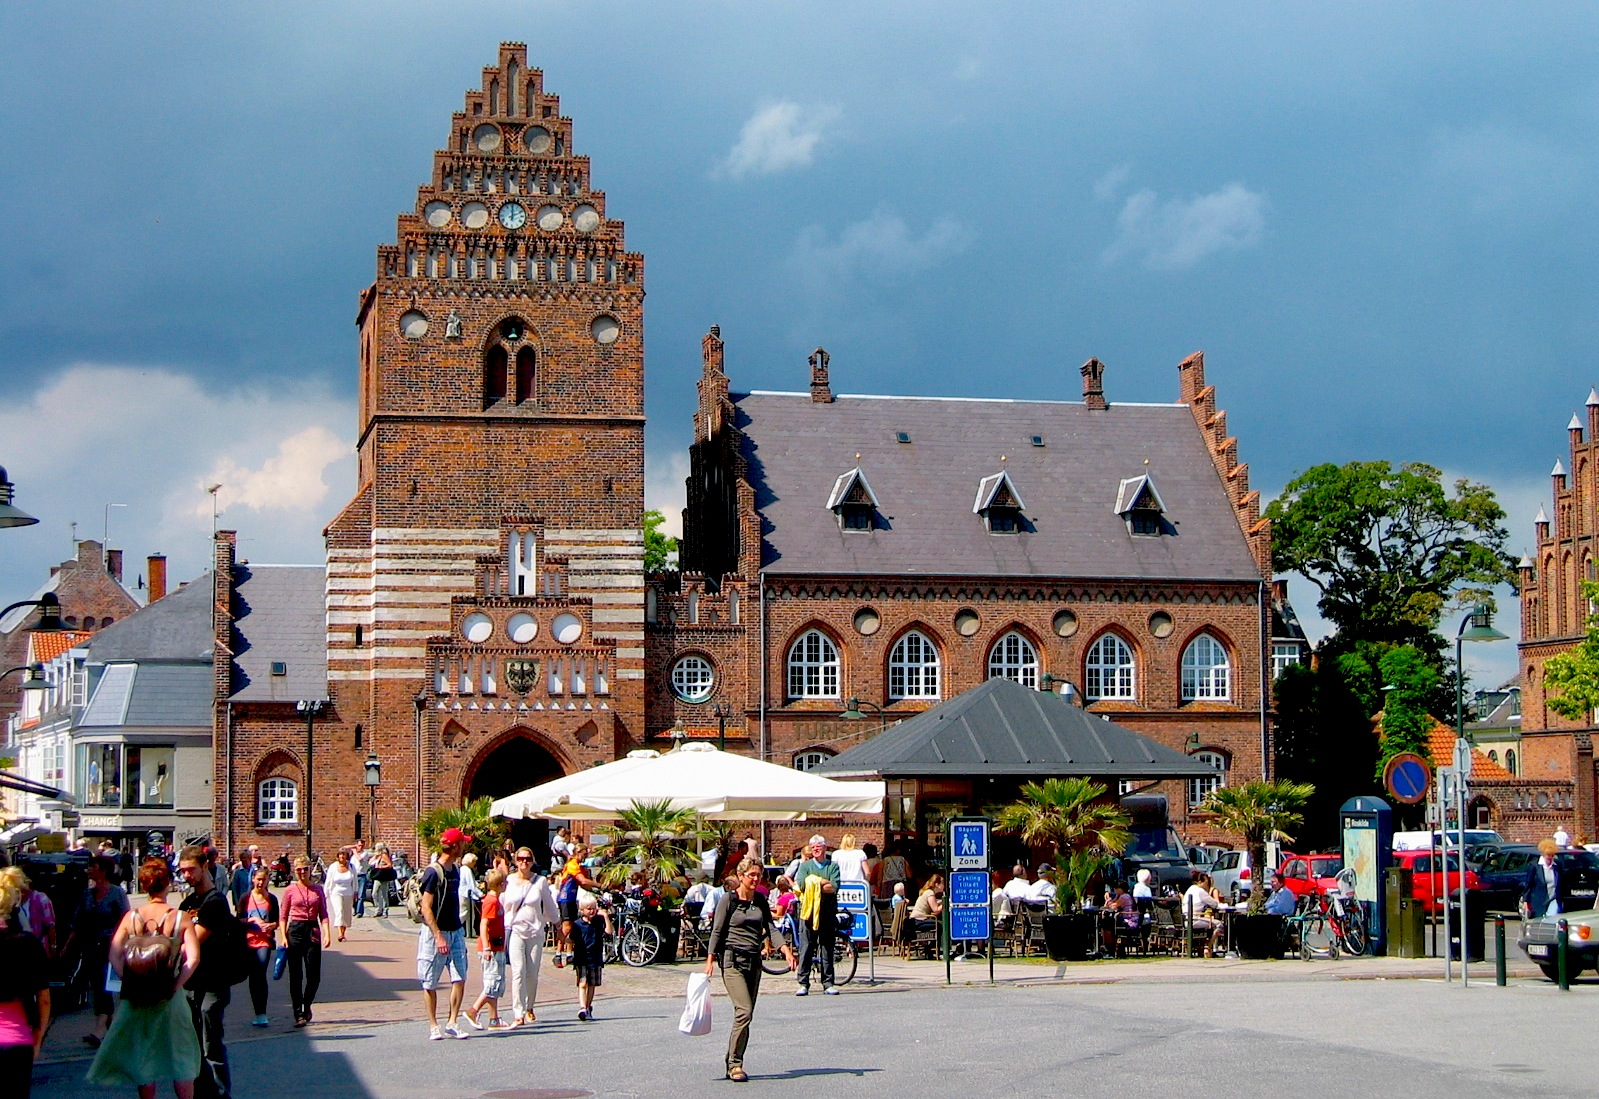 The former city hall of Roskilde, completed in 1884